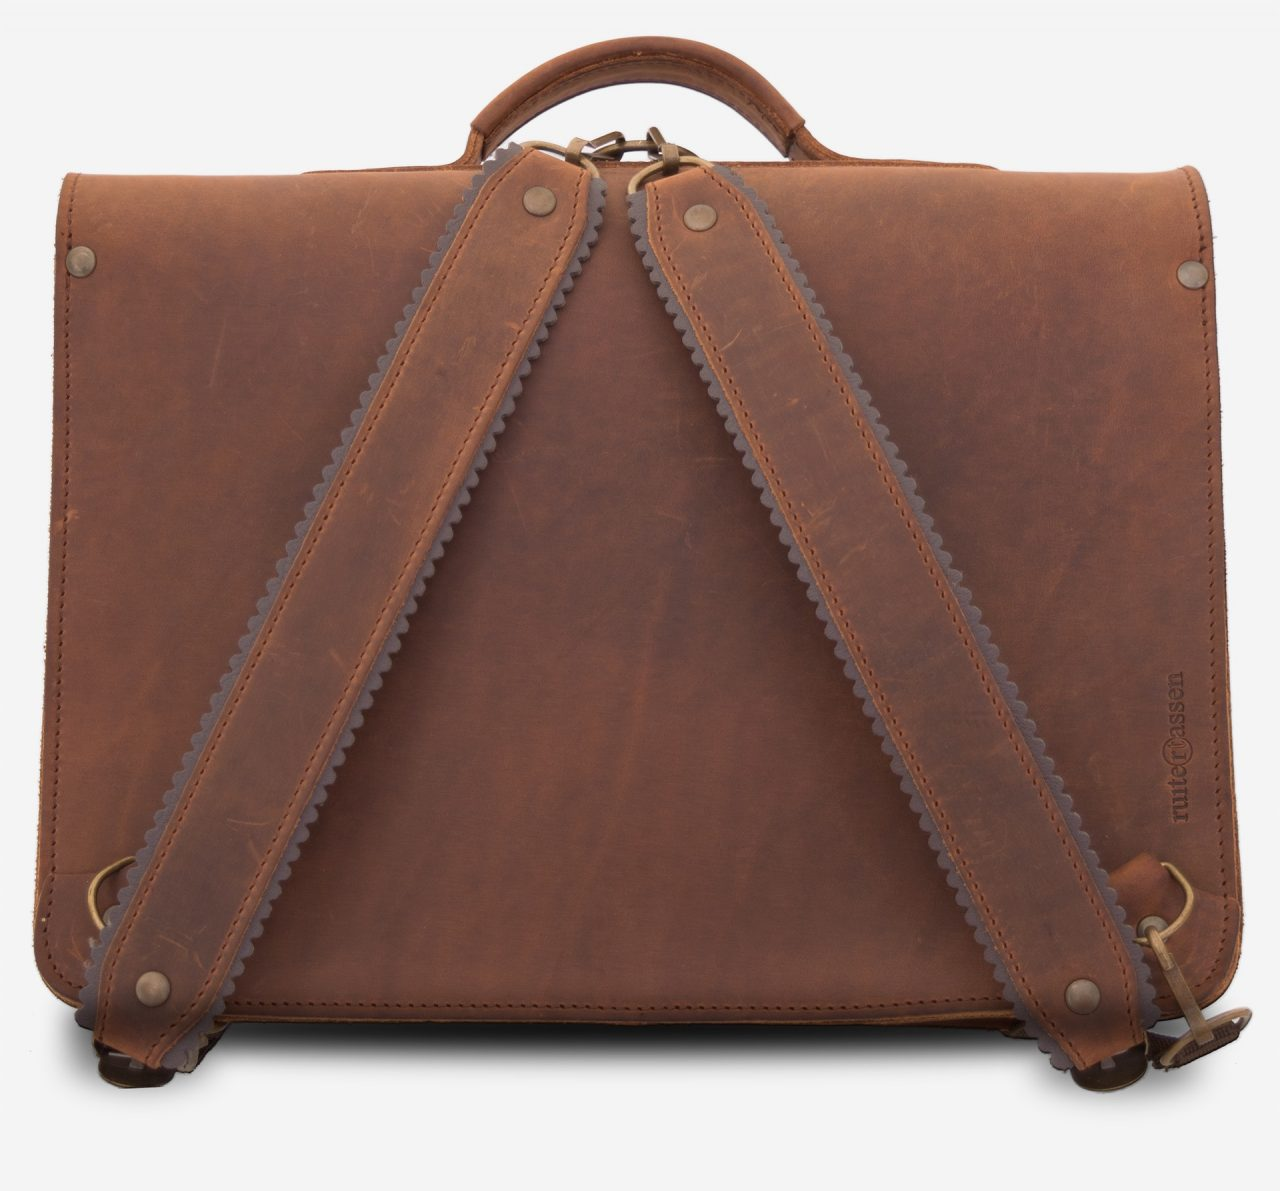 Back view of the student leather brown satchel fitted with back straps.